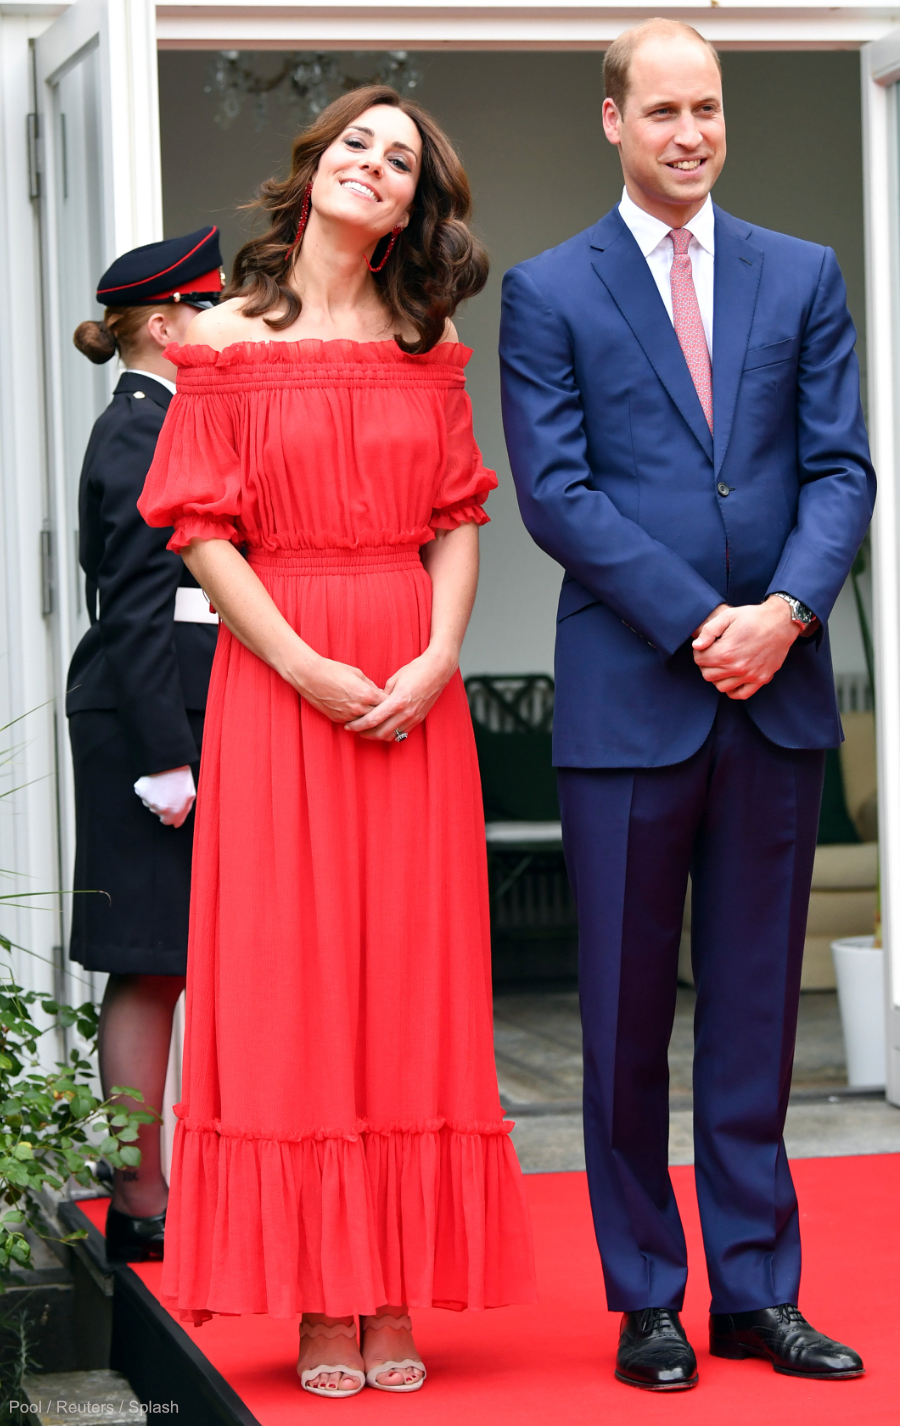 Kate Middleton at the Garden Party in Germany, wearing her red earrings